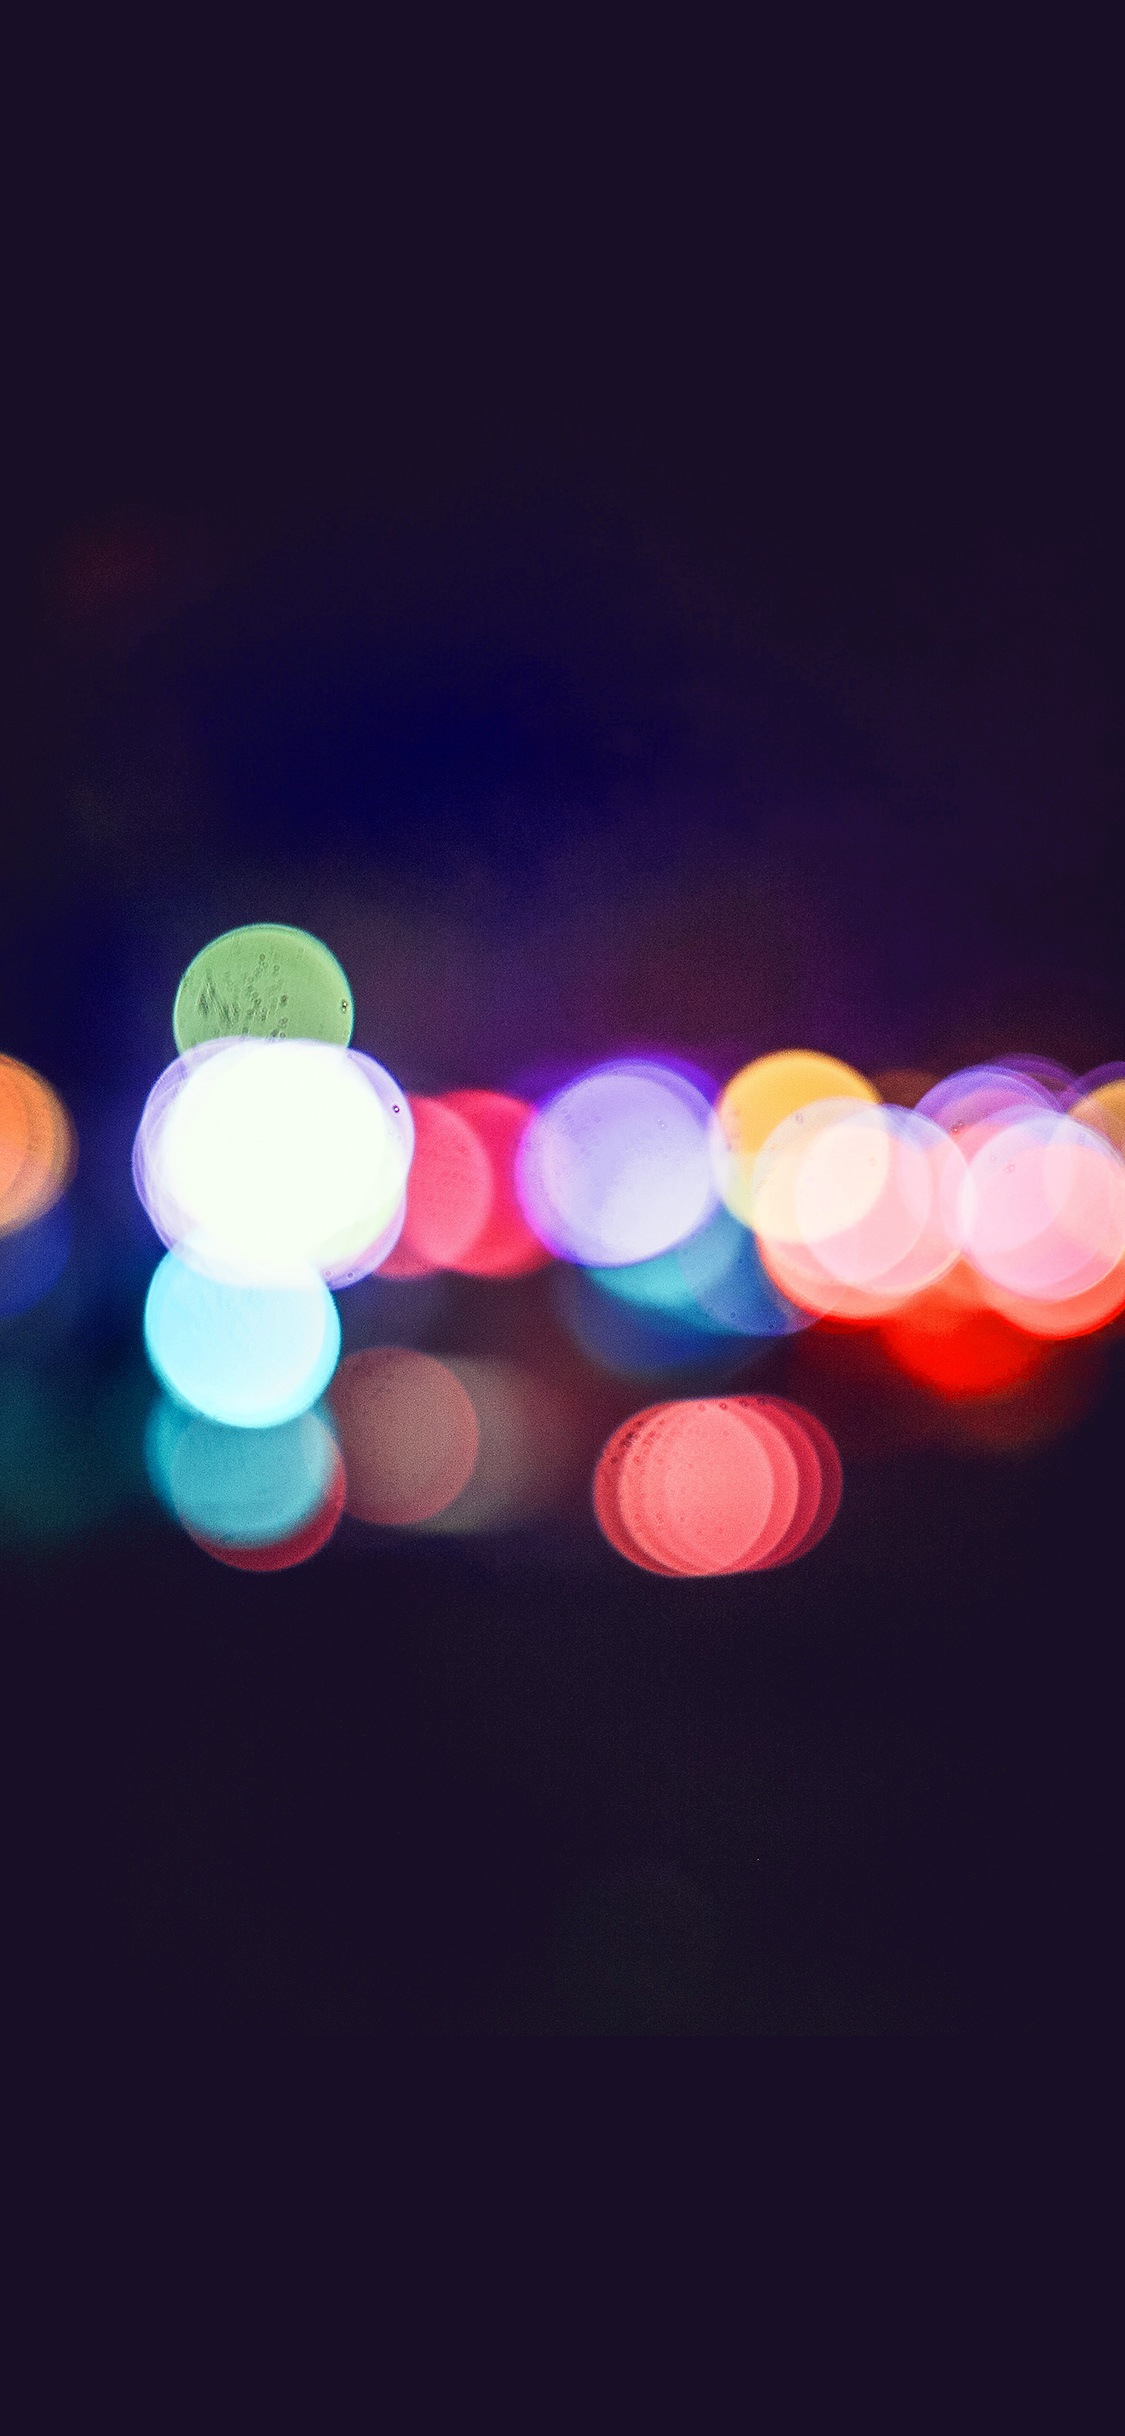 iPhonexpapers.com-Apple-iPhone-wallpaper-vt67-bokeh-art-light-dark-pattern-color-street